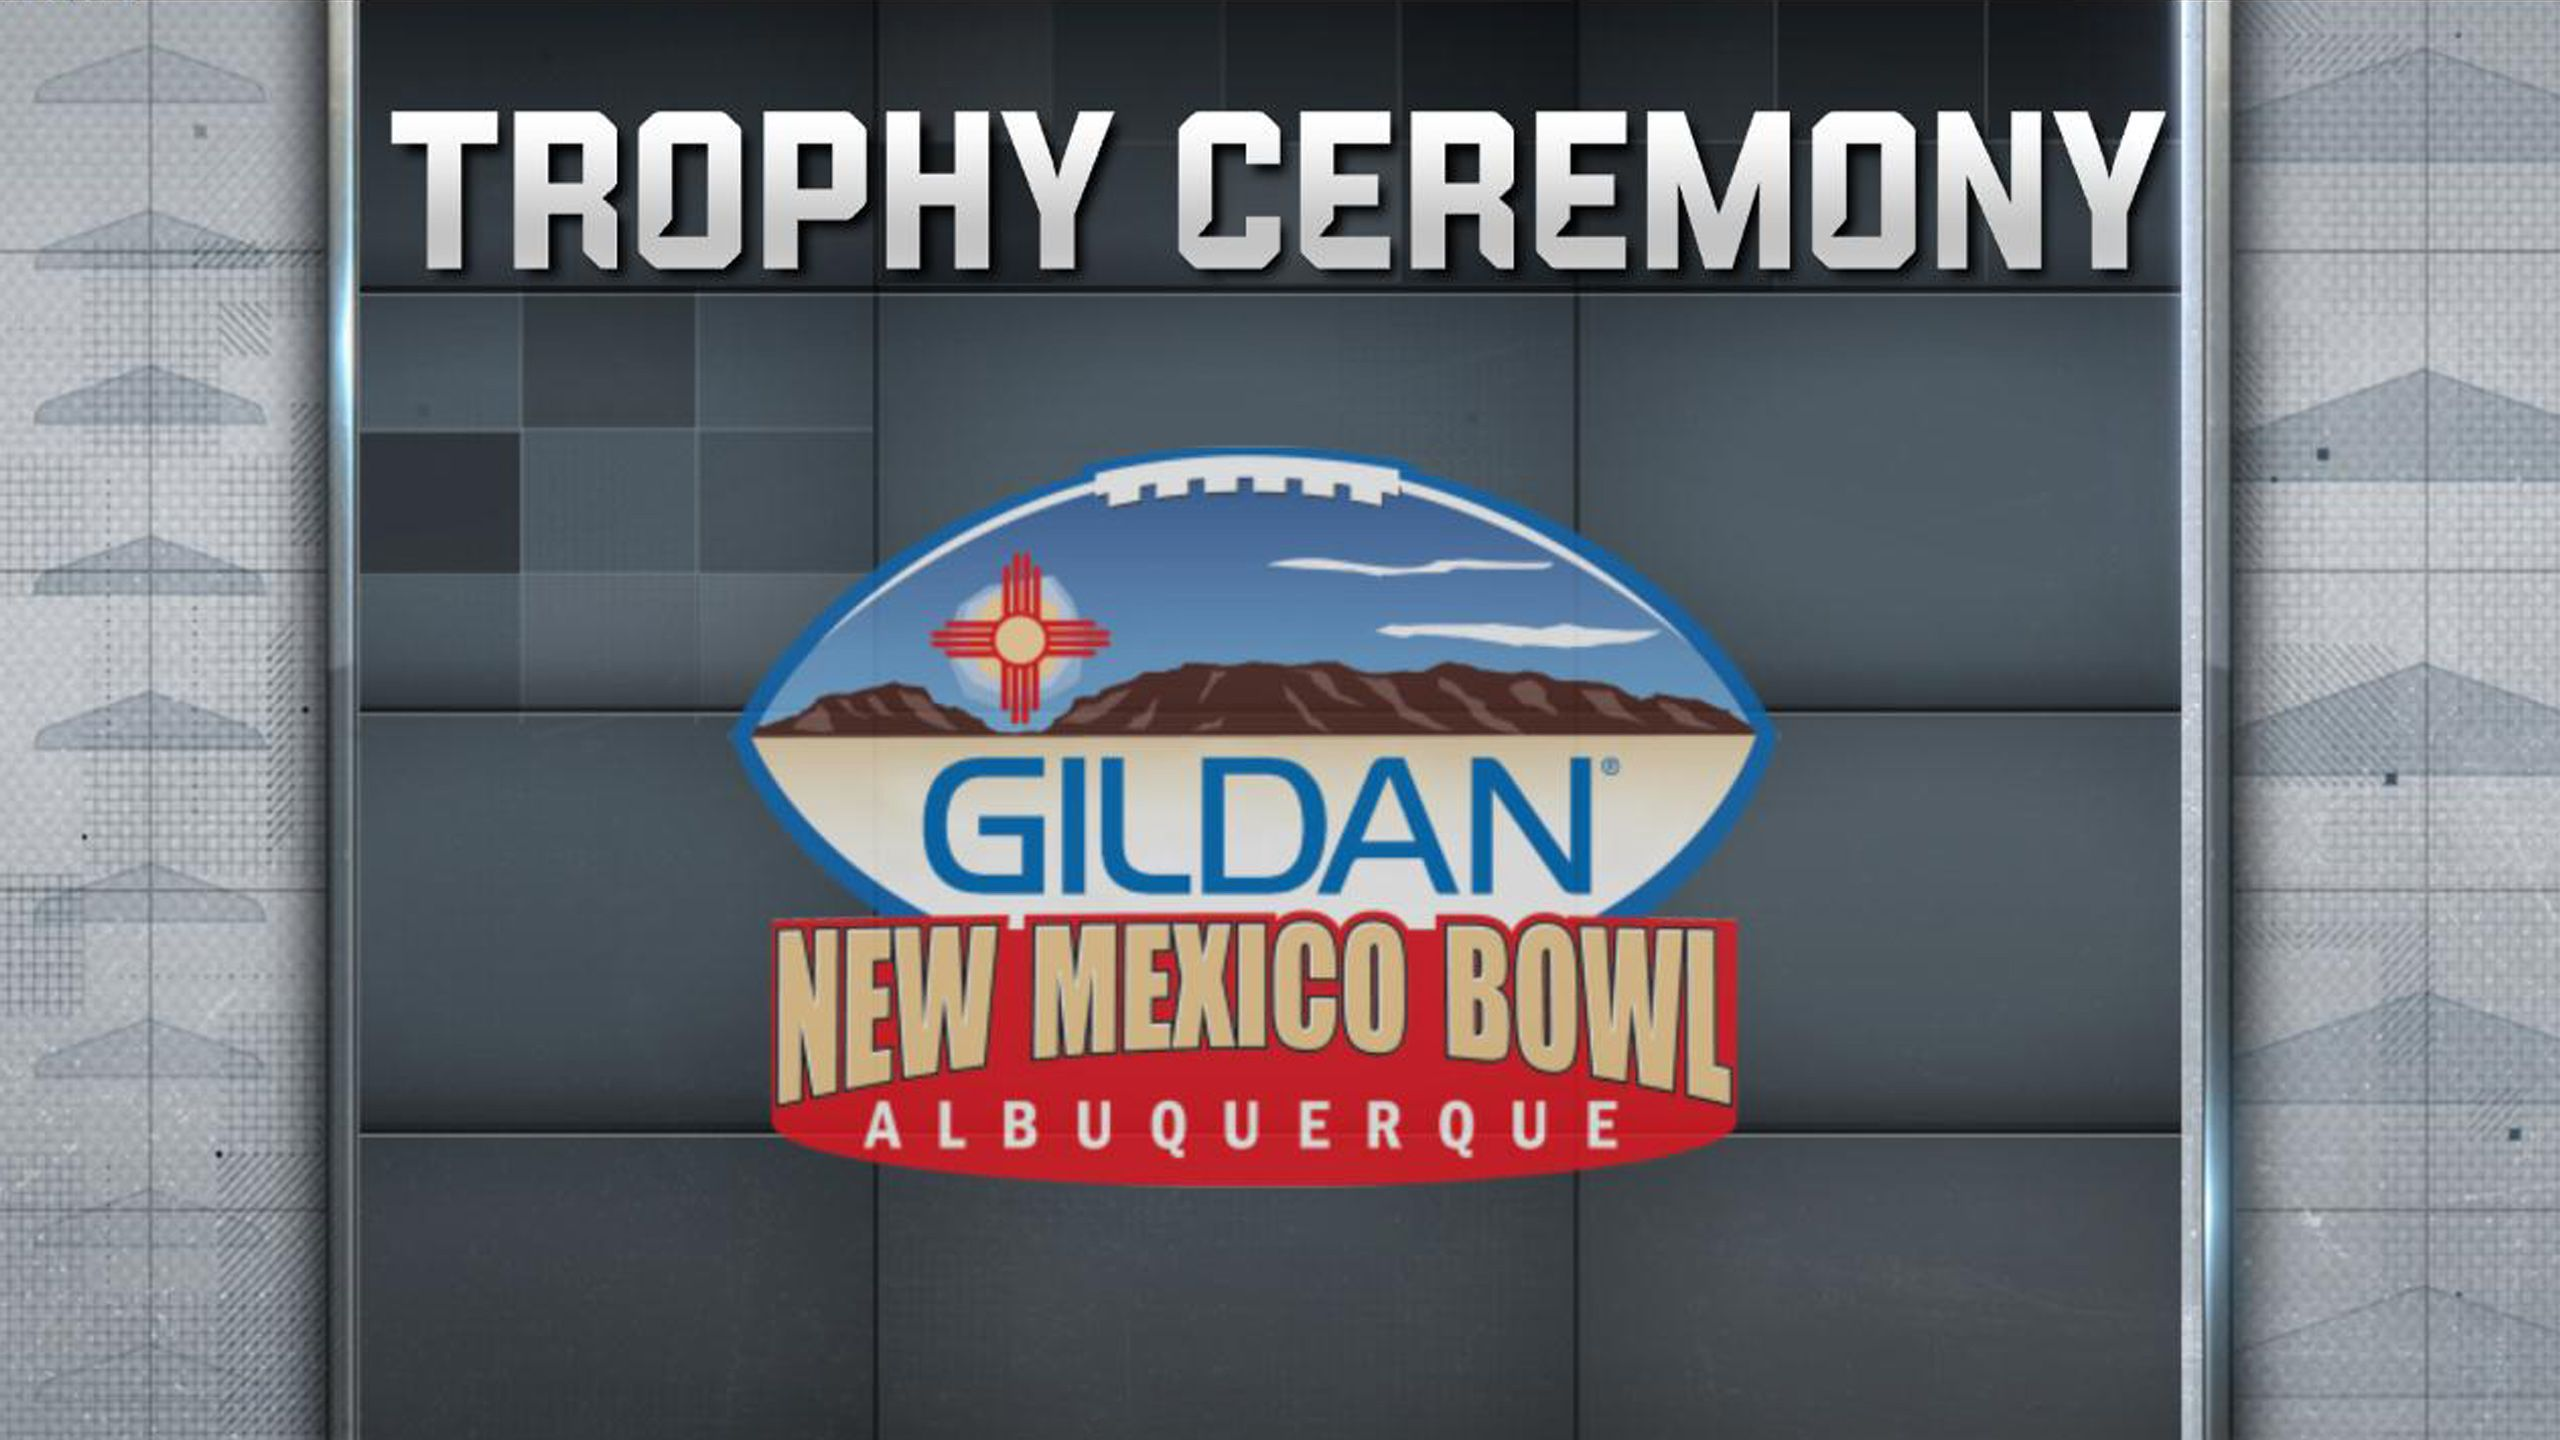 GILDAN New Mexico Bowl Trophy Ceremony Presented by Capital One